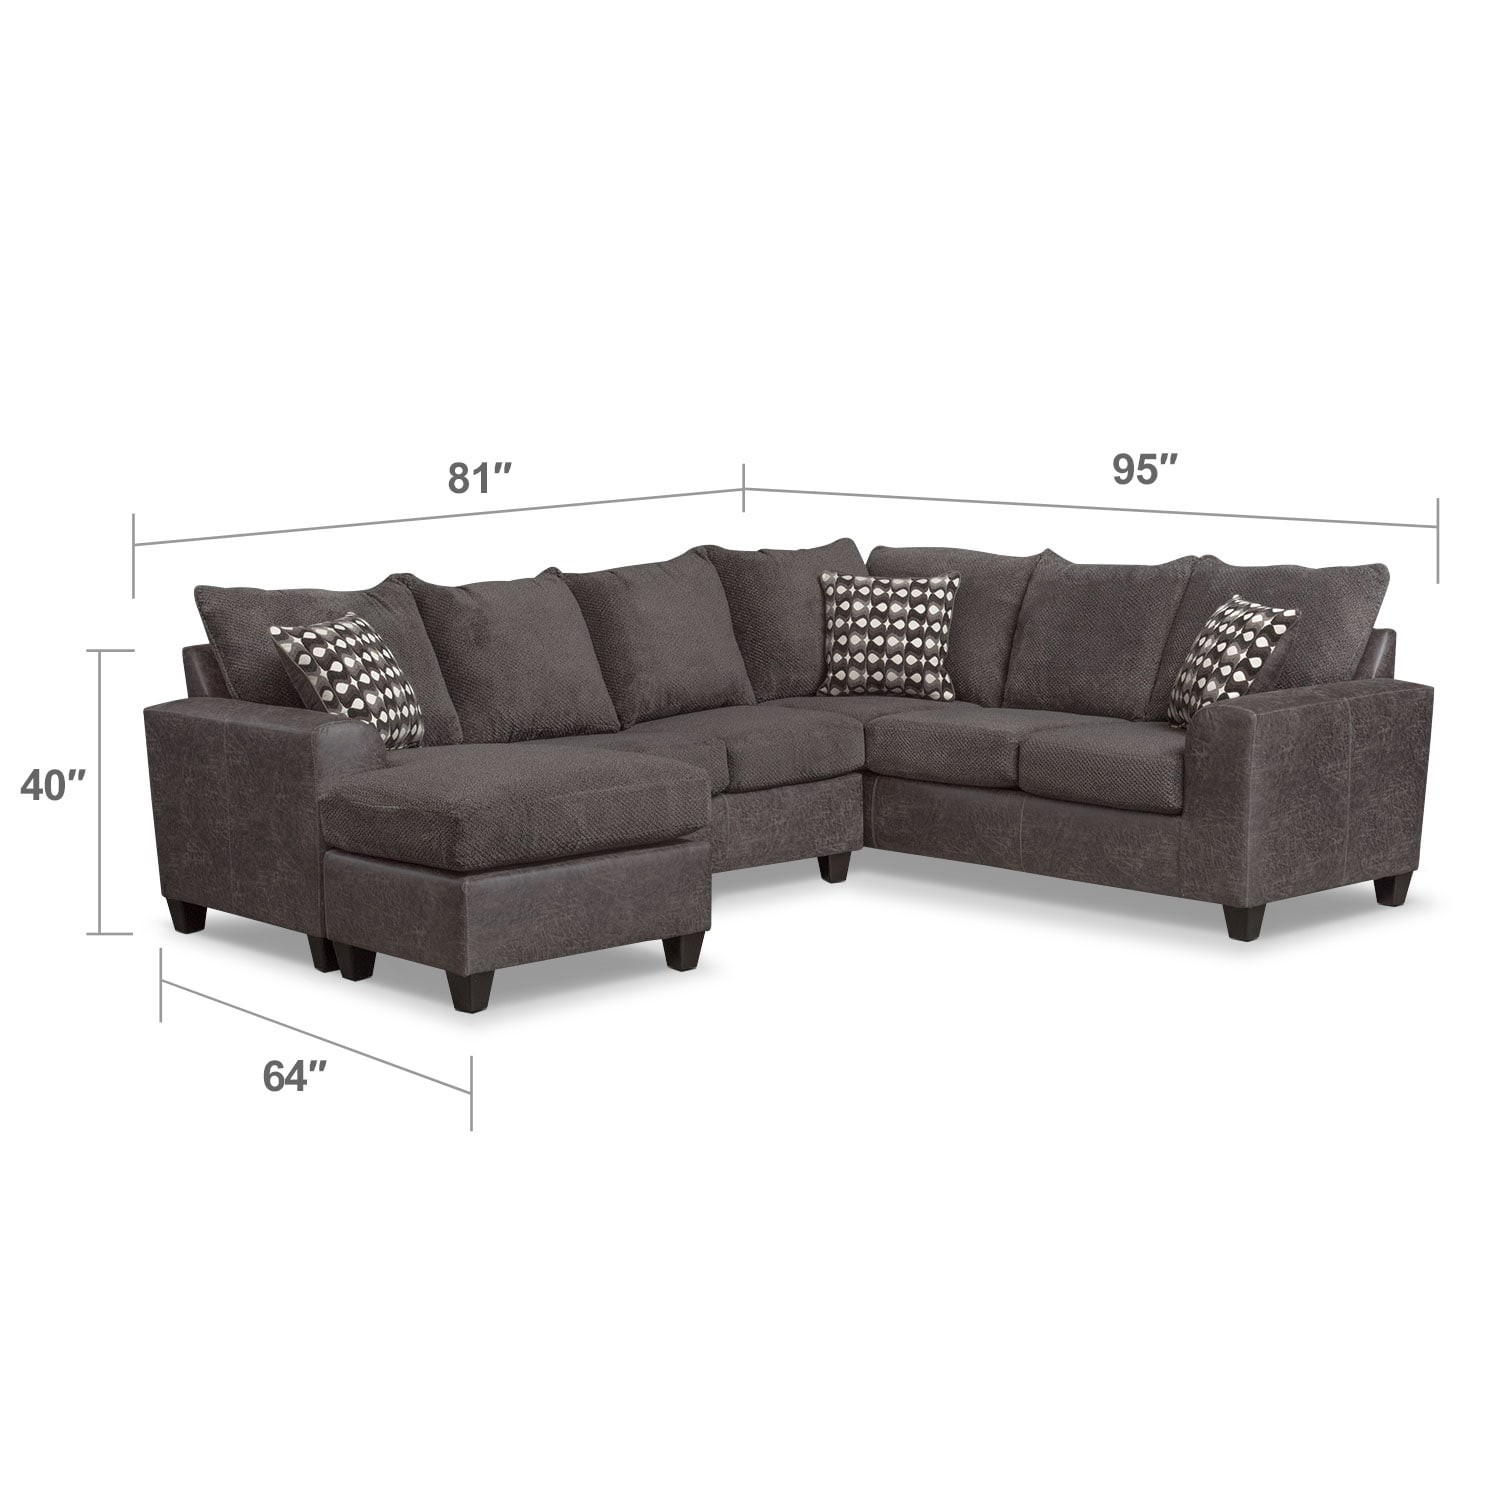 Living Room Furniture - Brando 3-Piece Sectional with Modular Chaise - Smoke